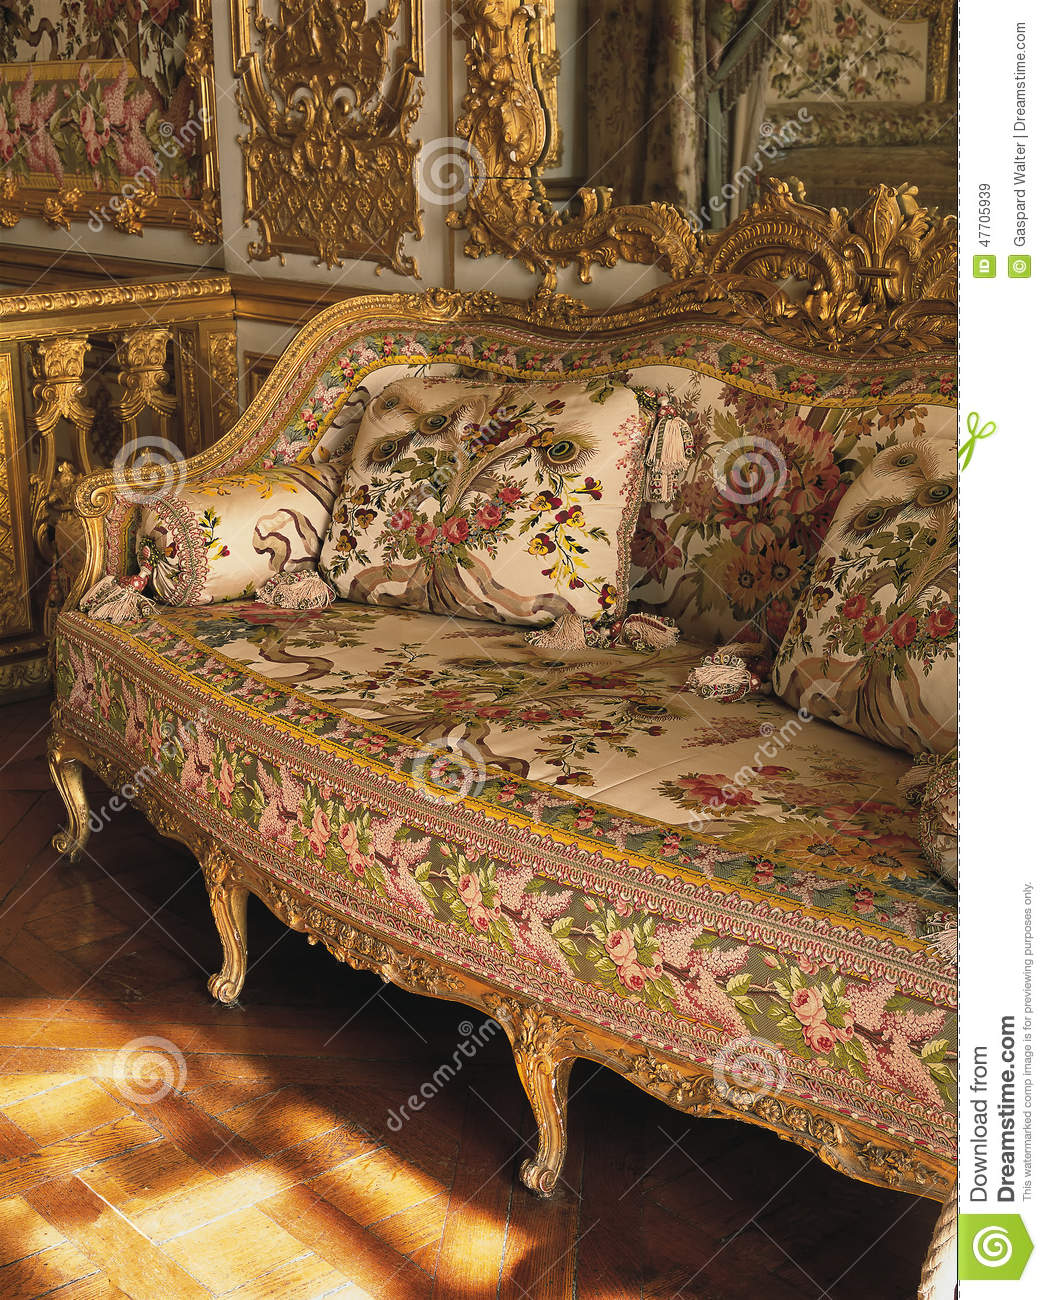 Sofa Dreams France Furniture In Queen Marie Antoinette Bedroom At Versailles